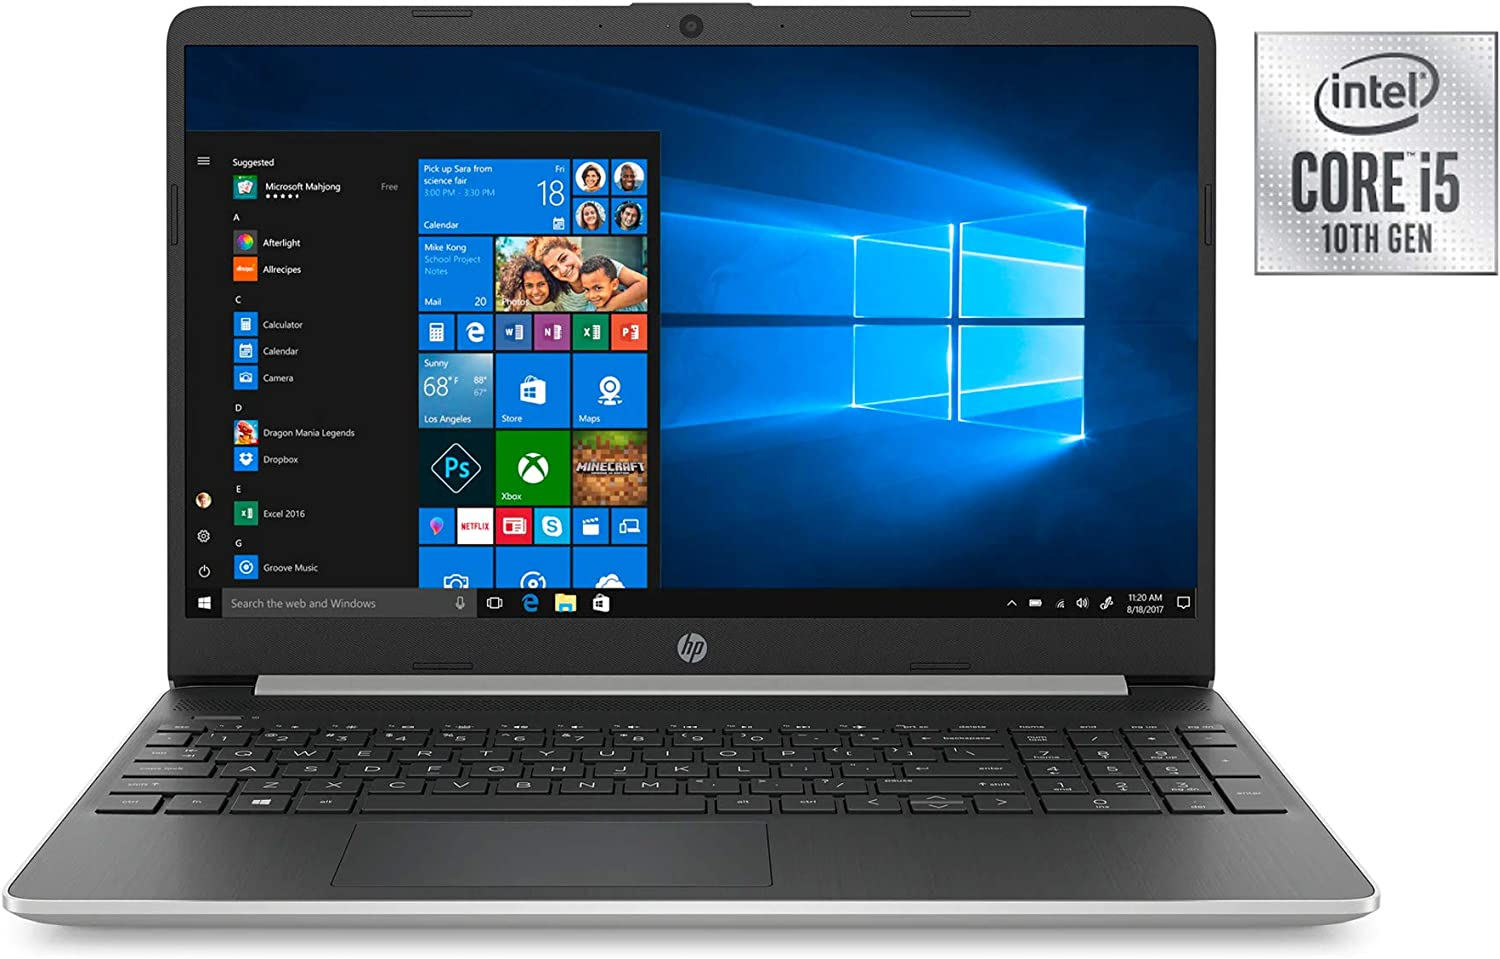 Newest HP 15.6inch Lightweight Laptop, Intel Quad-Core i5-1035G1 Processor Up to 3.60 GHz, 8GB DDR4 RAM, 256GB SSD + 16GB Optane, HDMI, Bluetooth, Win 10-Silver (Renewed)